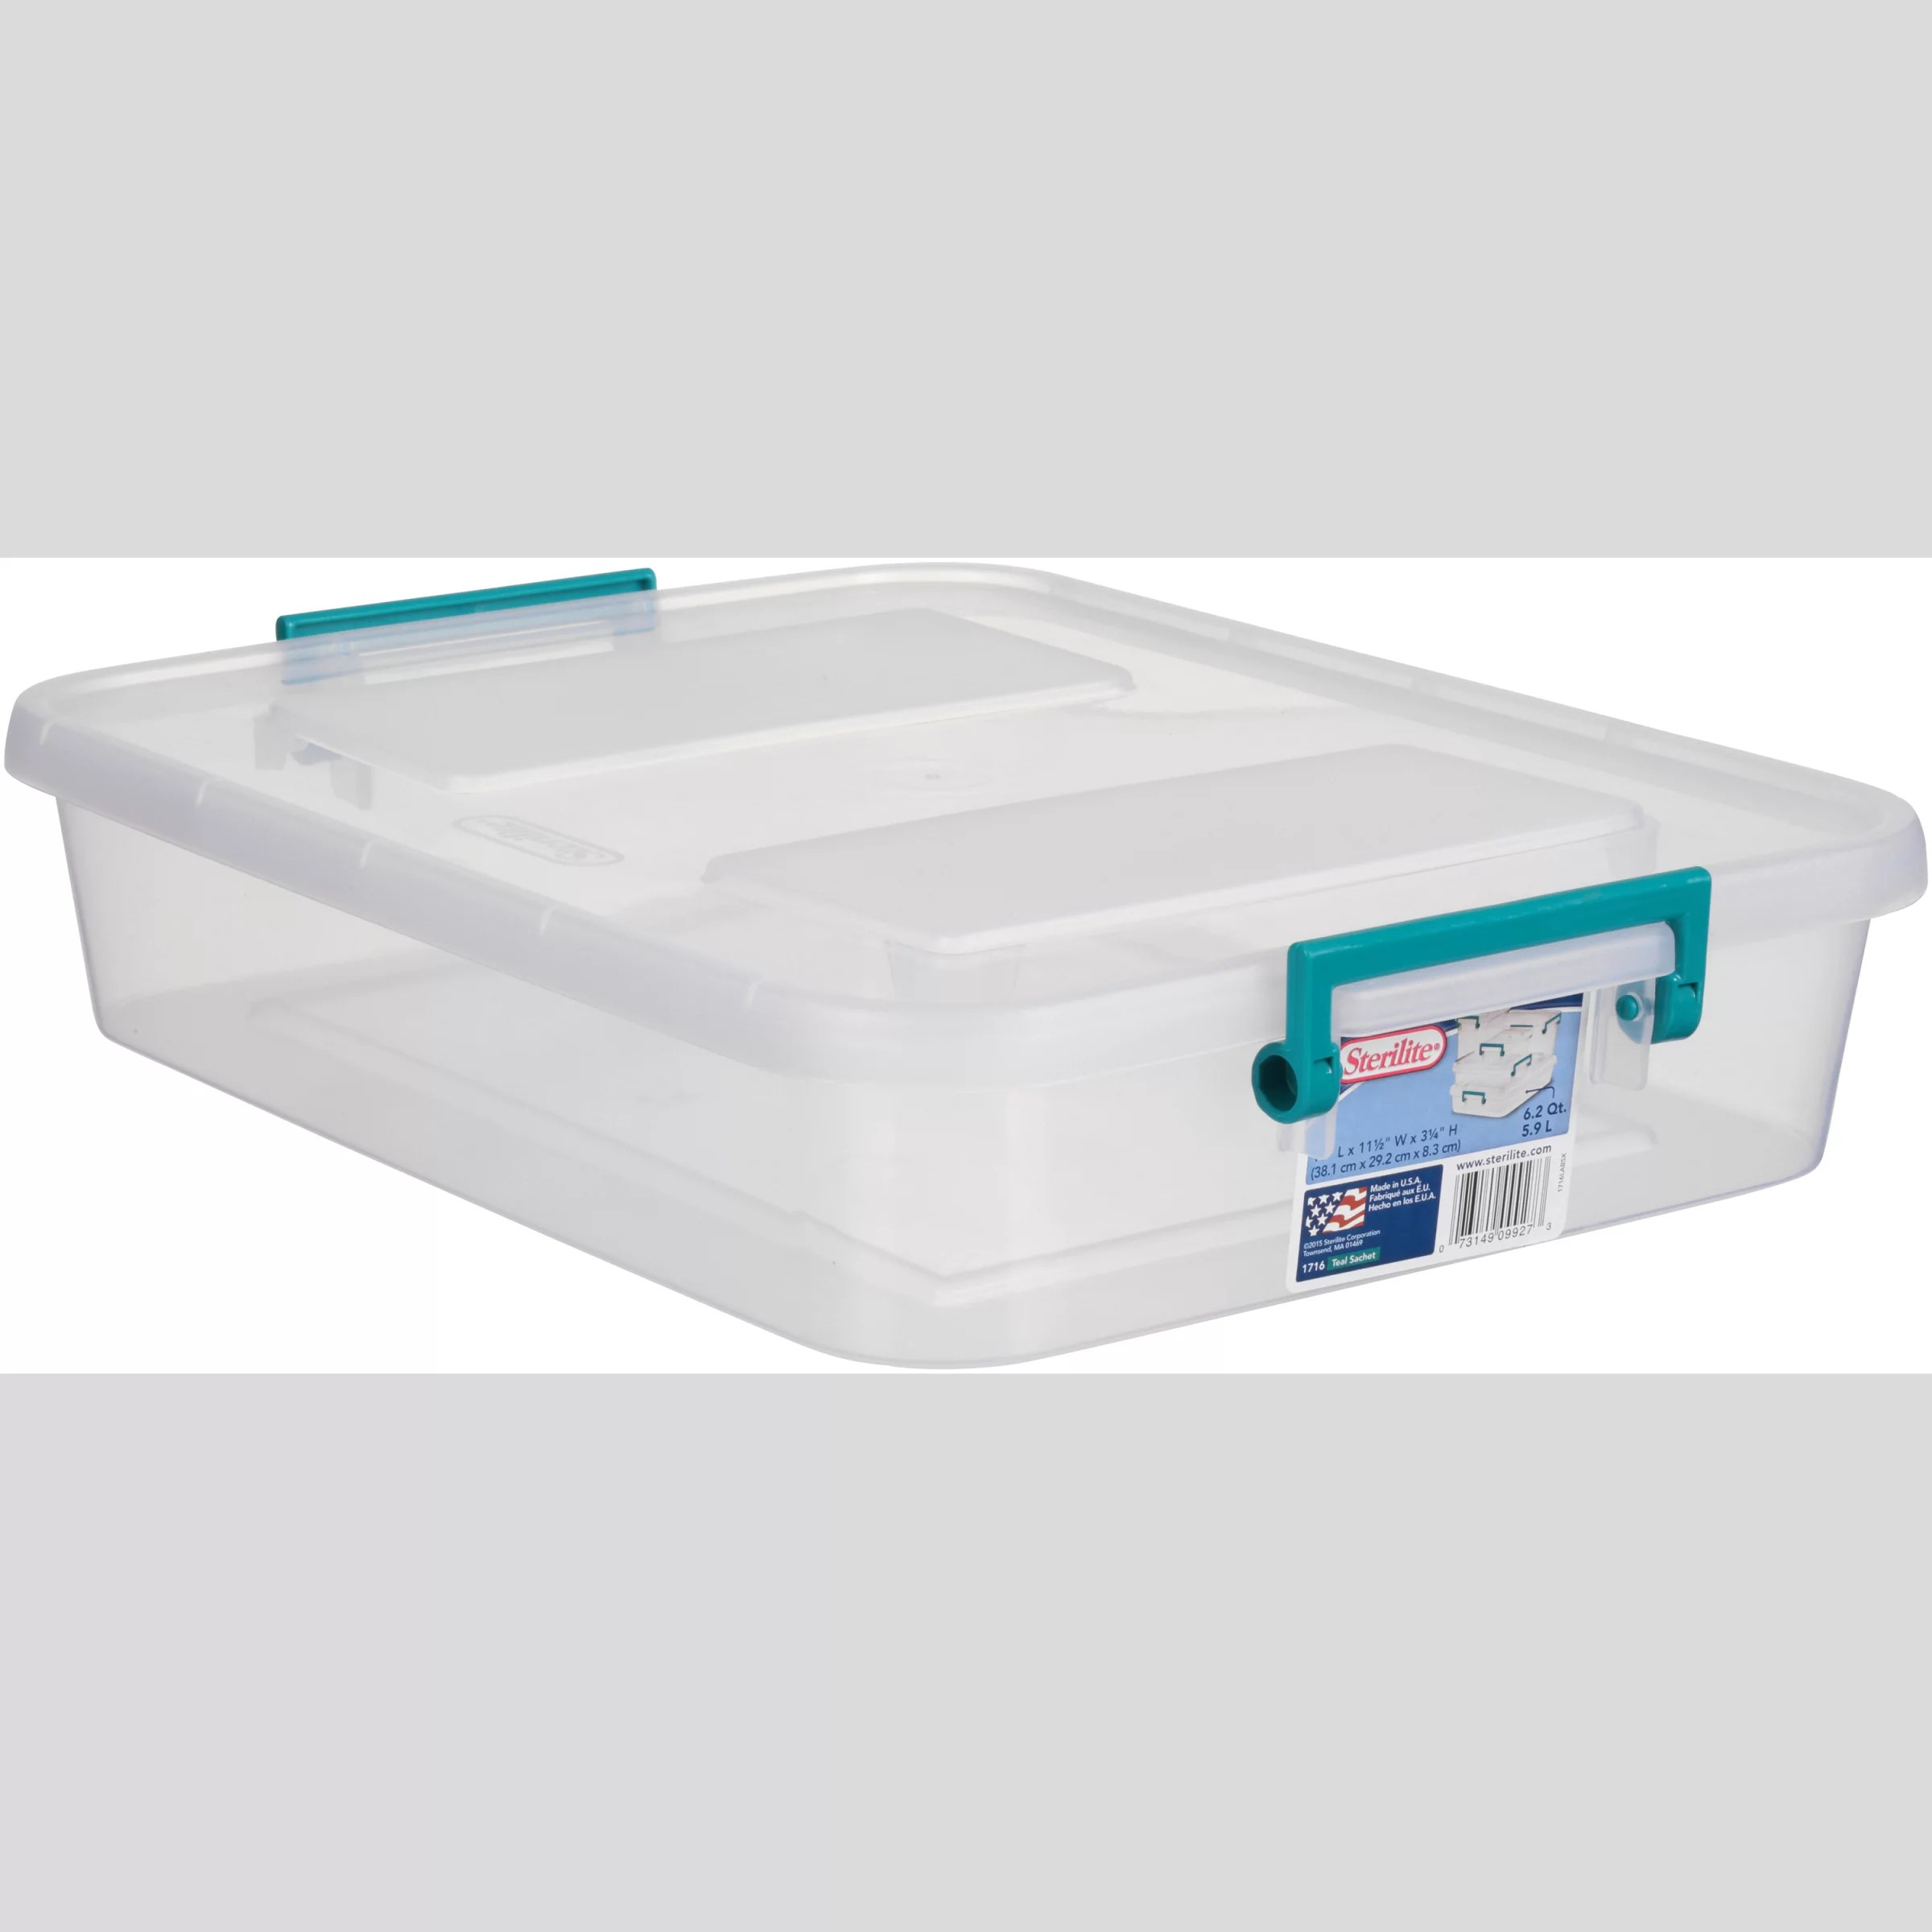 Sterilite 6.2 qt Modular Latch Box, Teal Sachet (Available ...